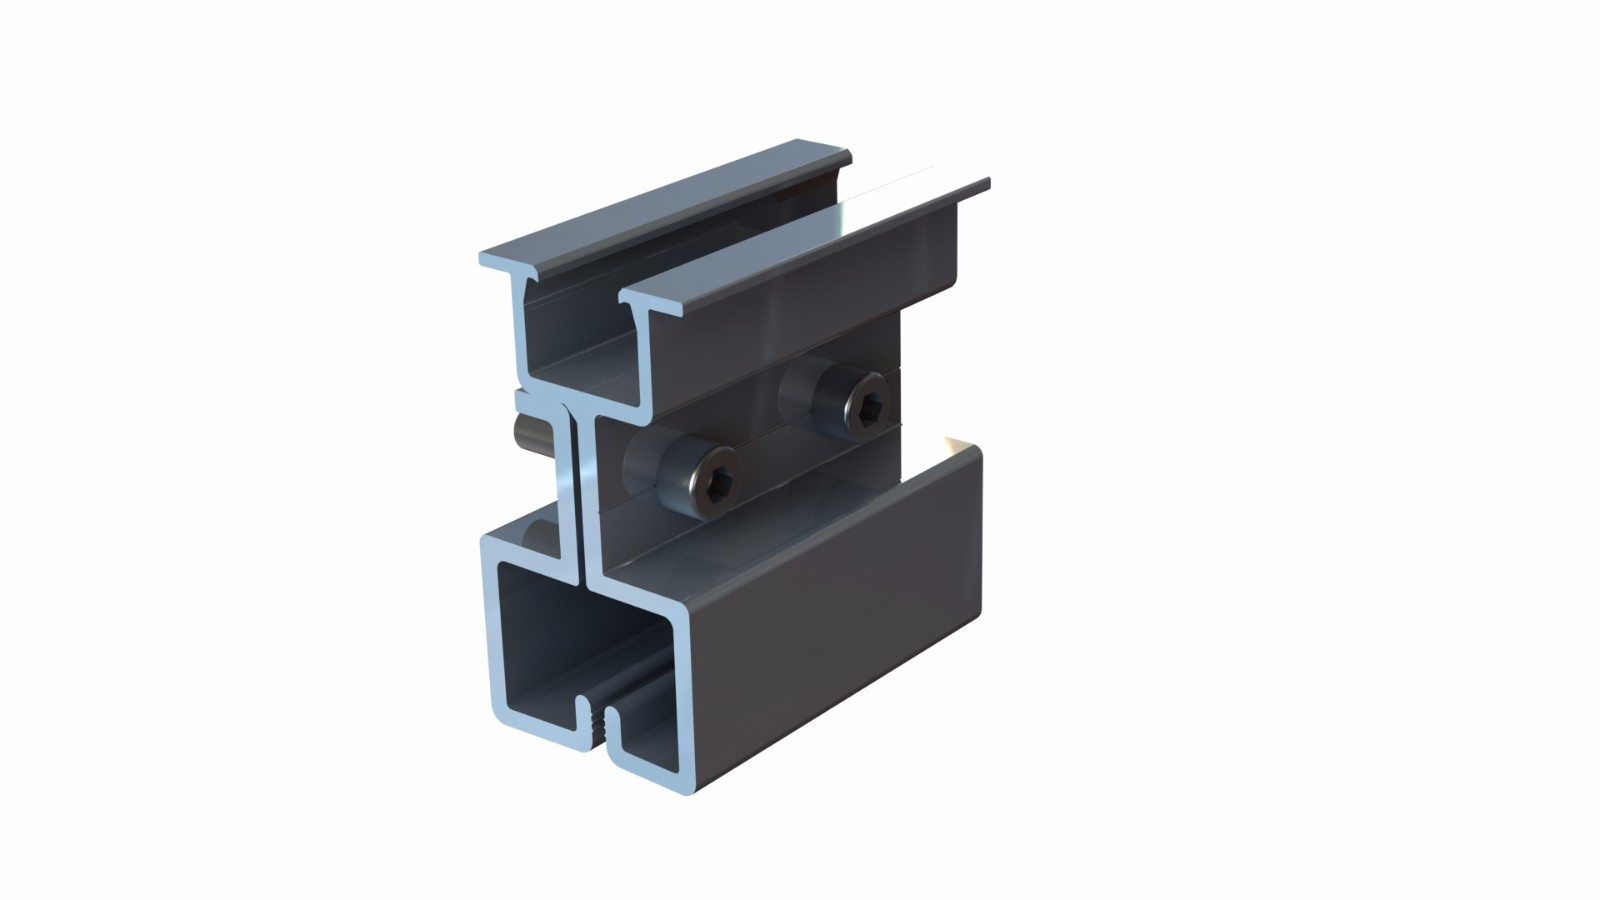 High quality Solar Racking Stanidng Seam Roof Clamps Quotes,China Solar Racking Stanidng Seam Roof Clamps Factory,Solar Racking Stanidng Seam Roof Clamps Purchasing